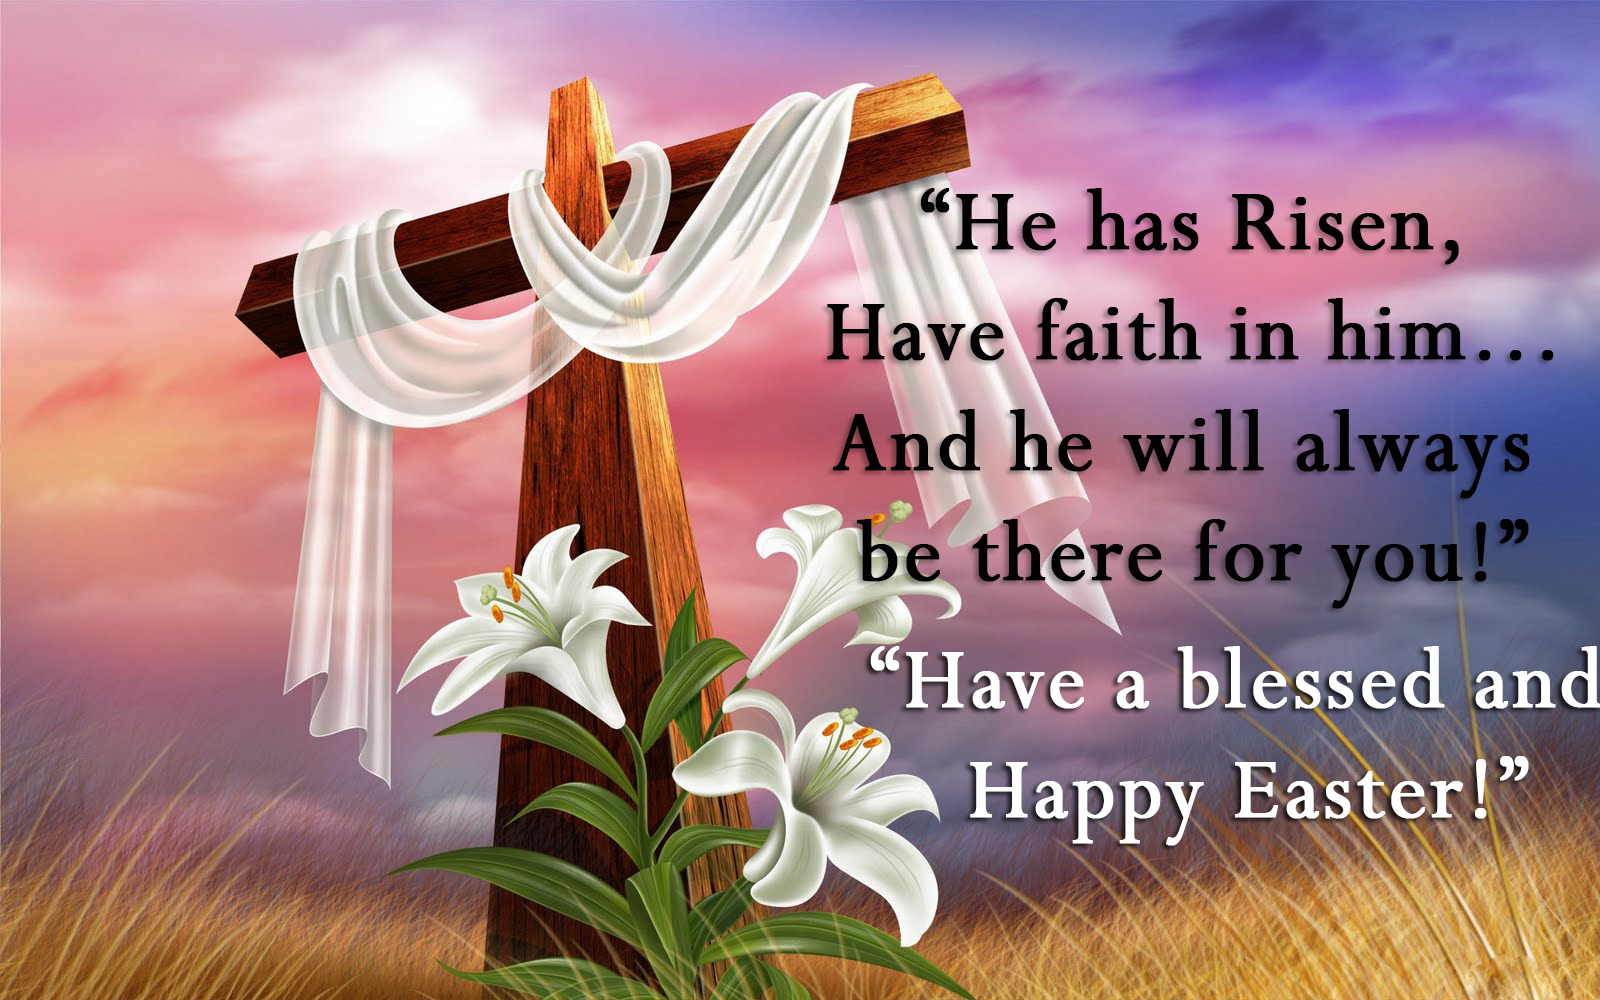 Happy Easter 2019 Images Pictures Quotes Wishes Messages 1600x1000